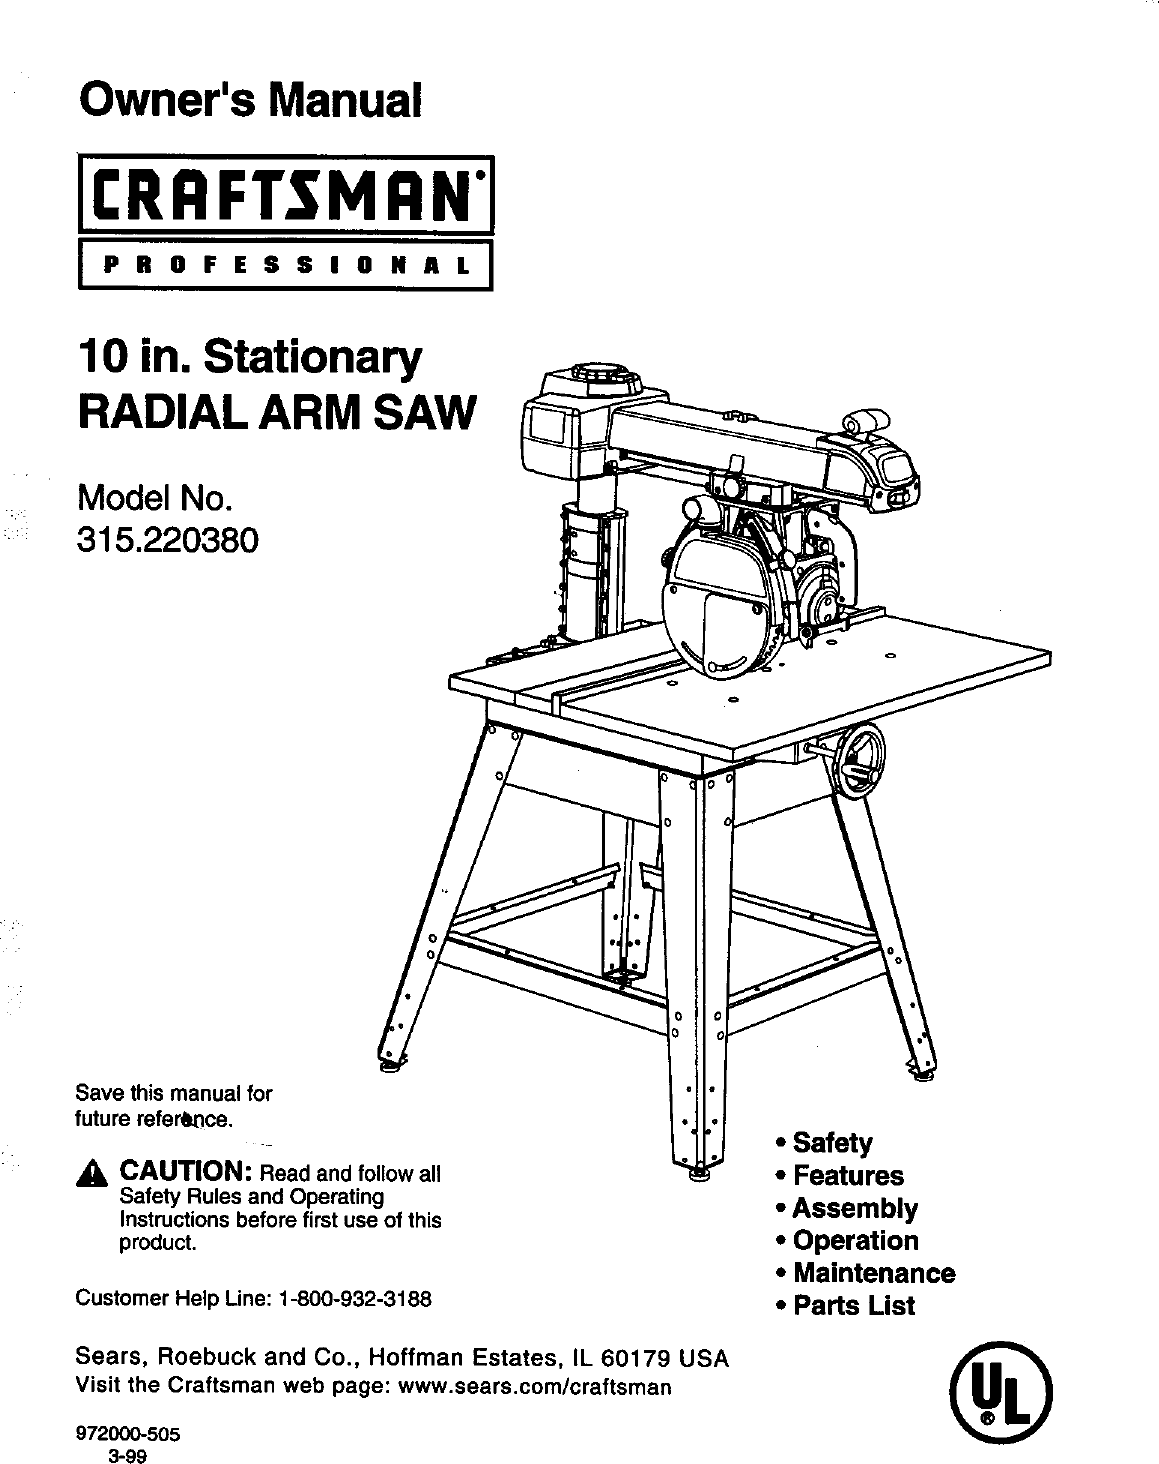 Craftsman 315220380 User Manual 10 In  Stationary Radial